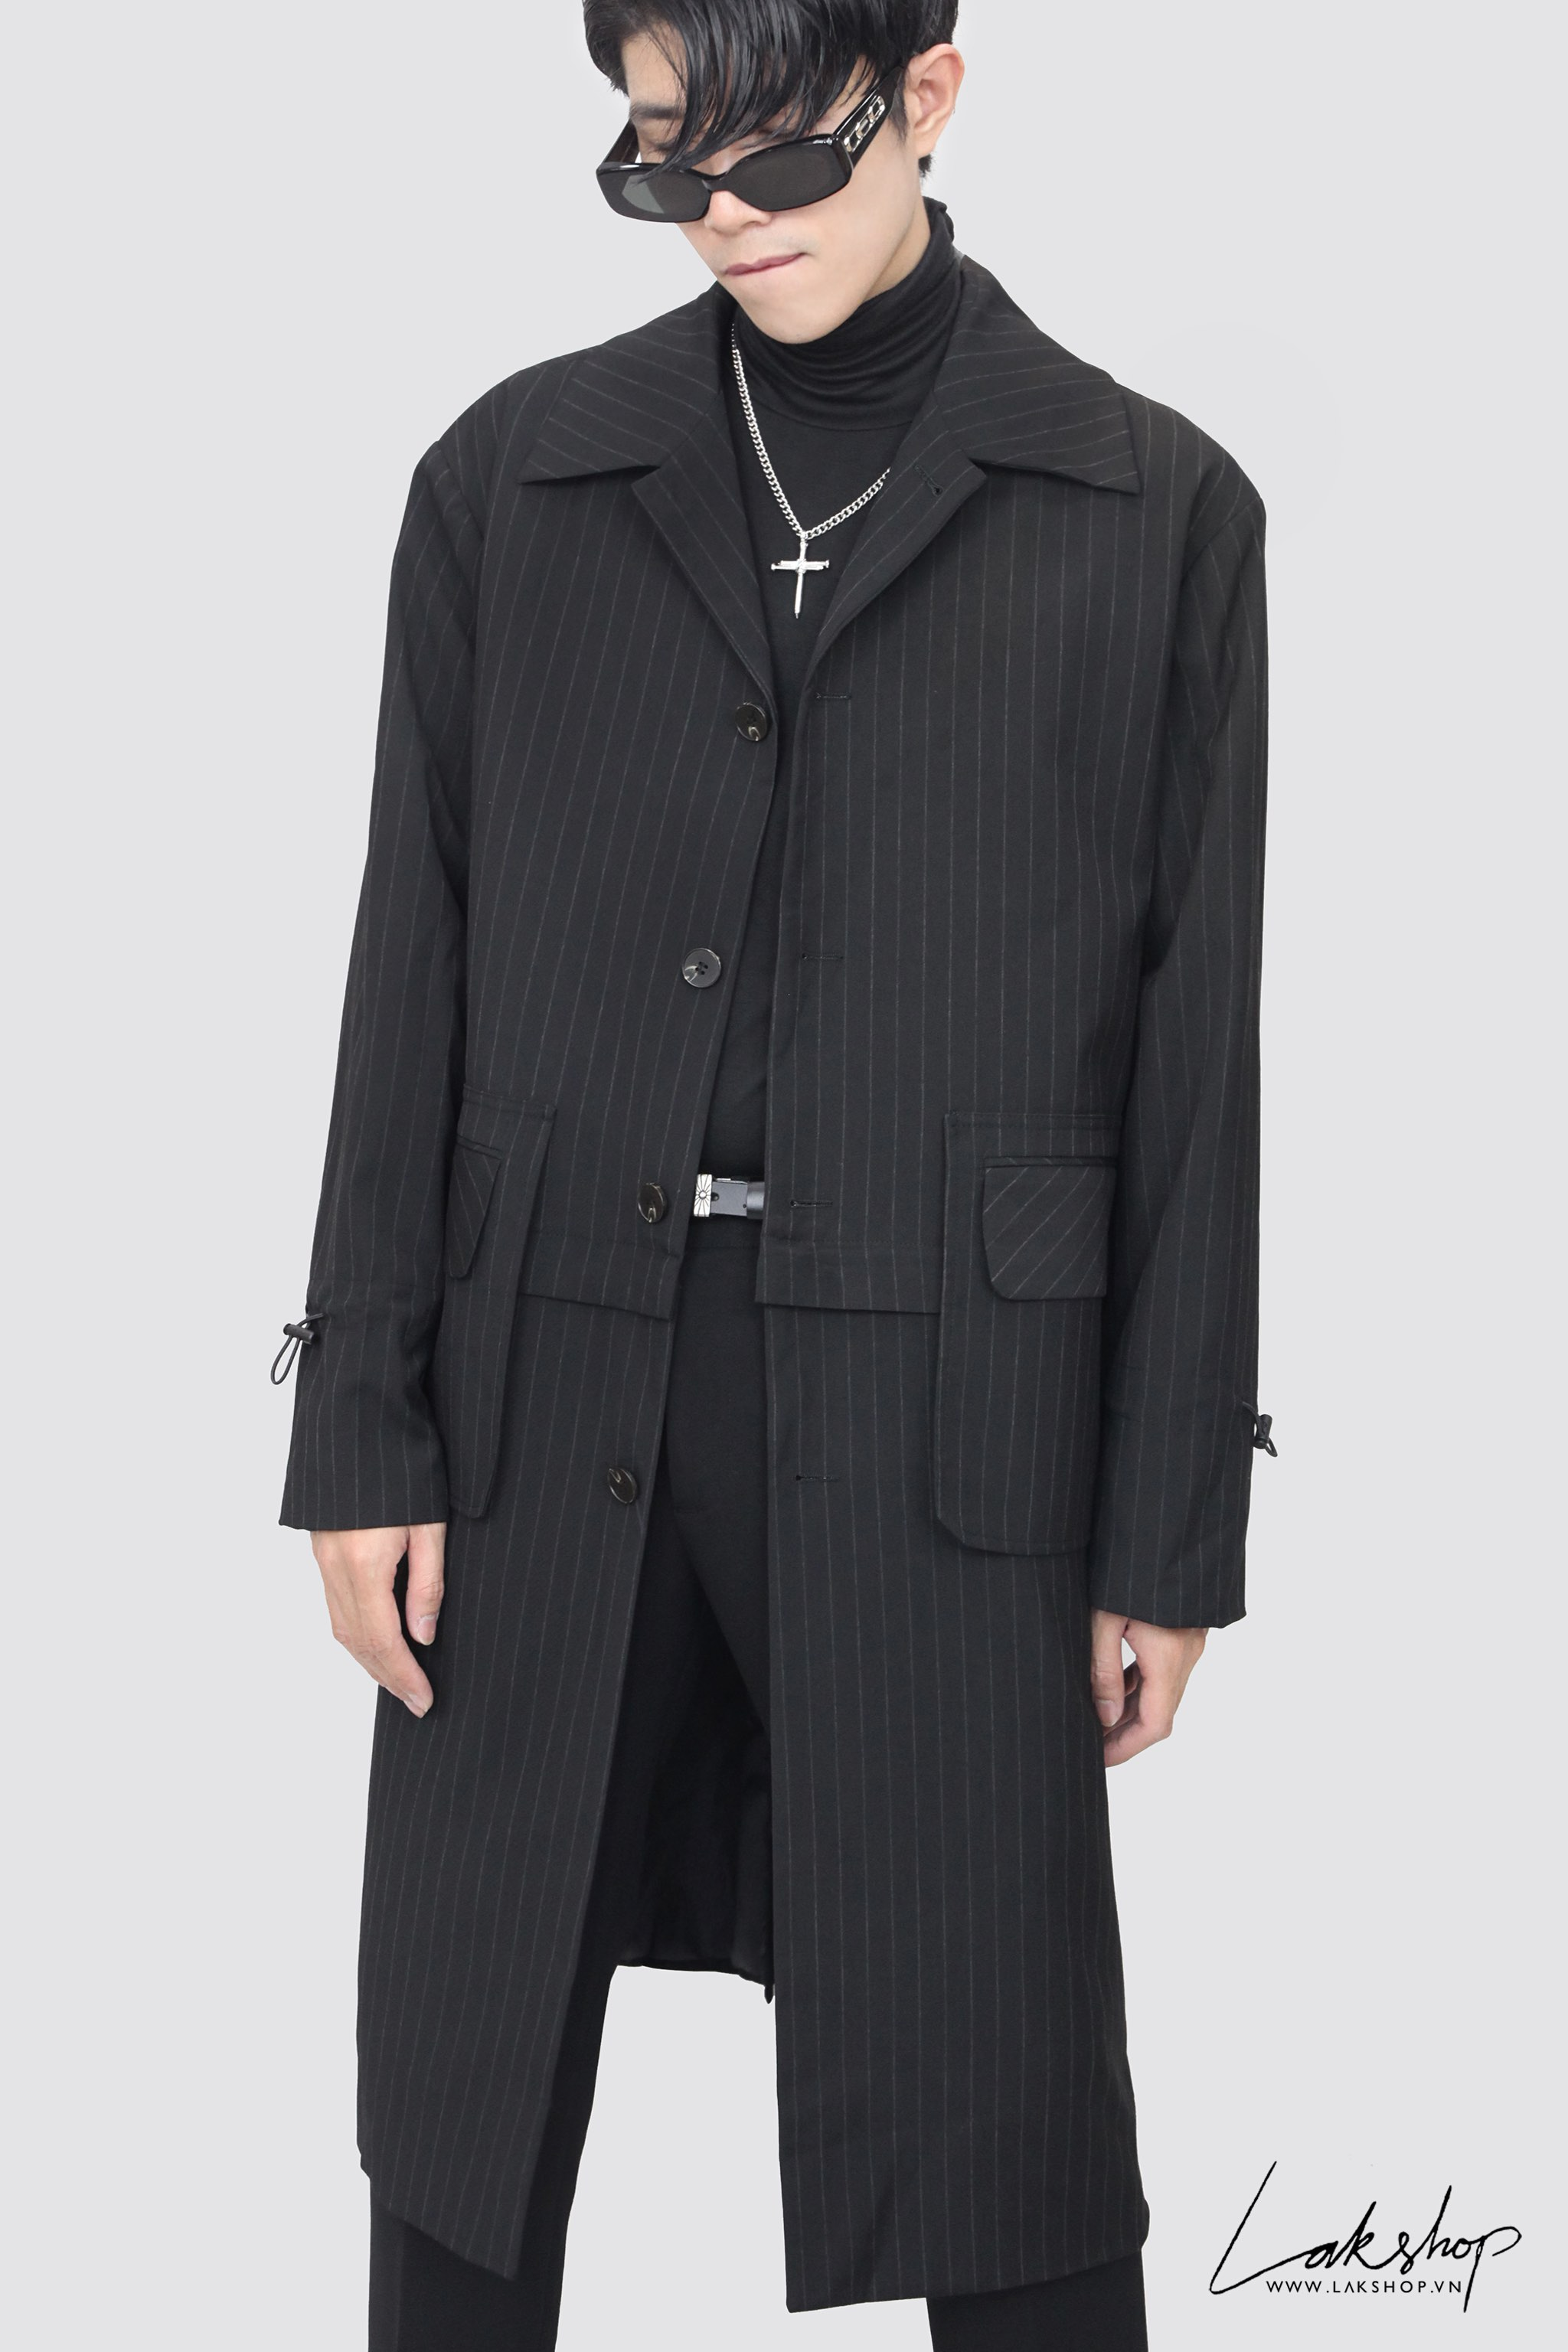 Black Stripe with Zip Trench Coat 2style ds20